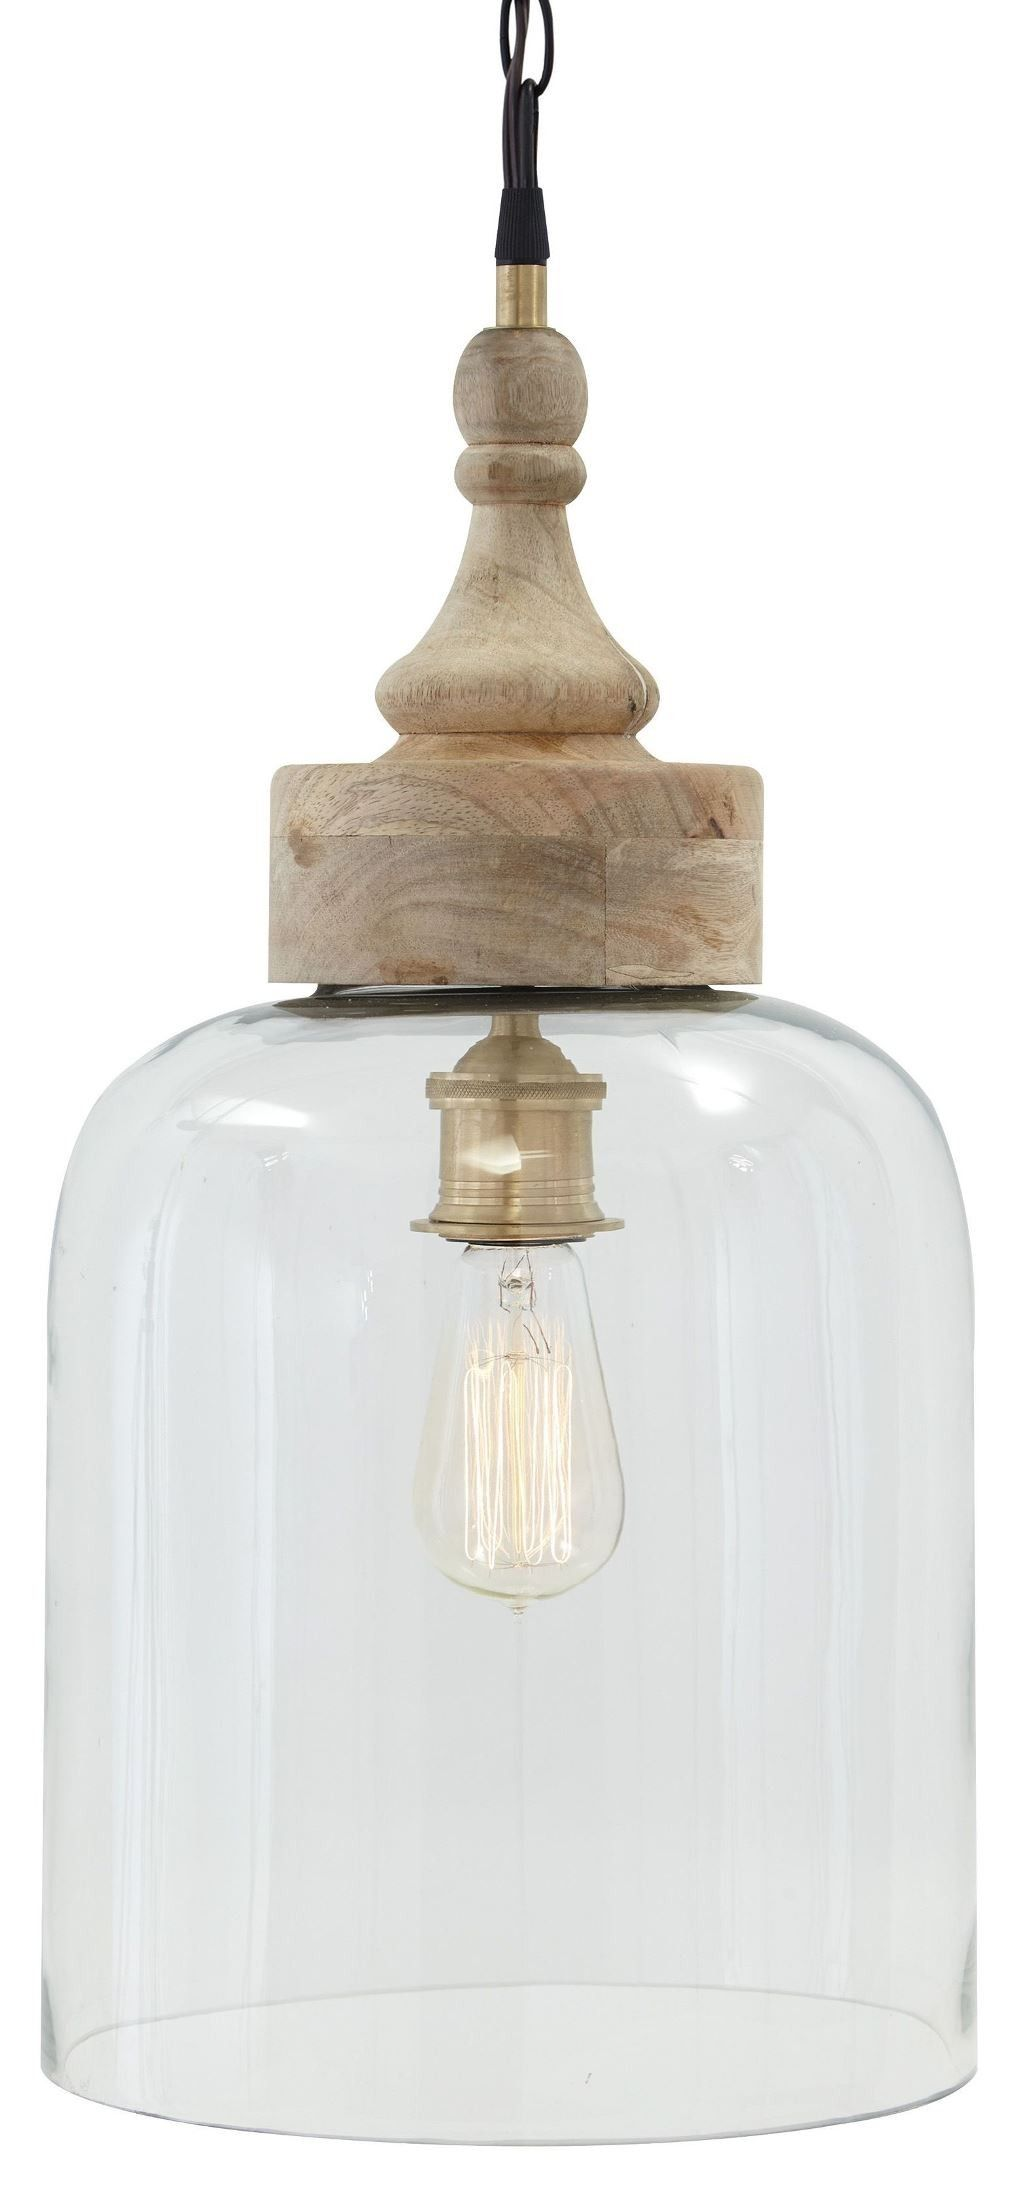 Glass And Natural Wood Pendant Light In 2020 Glass Pendant Light Wood Pendant Light Coastal Pendant Lighting